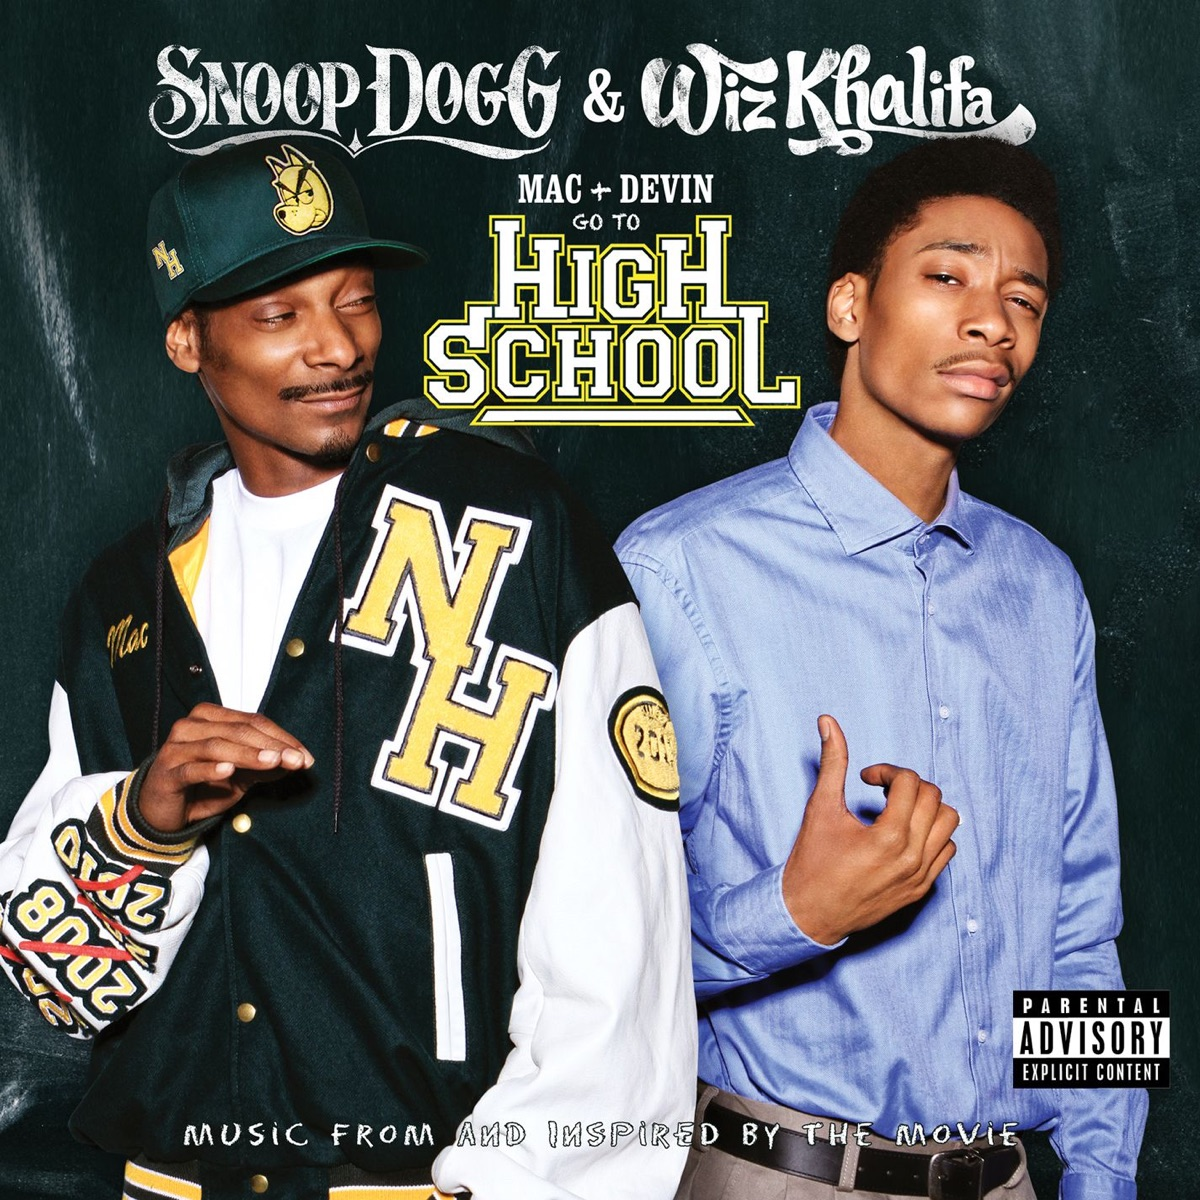 Mac and Devin Go to High School Music from and Inspired By the Movie Deluxe Version Snoop Dogg  Wiz Khalifa CD cover